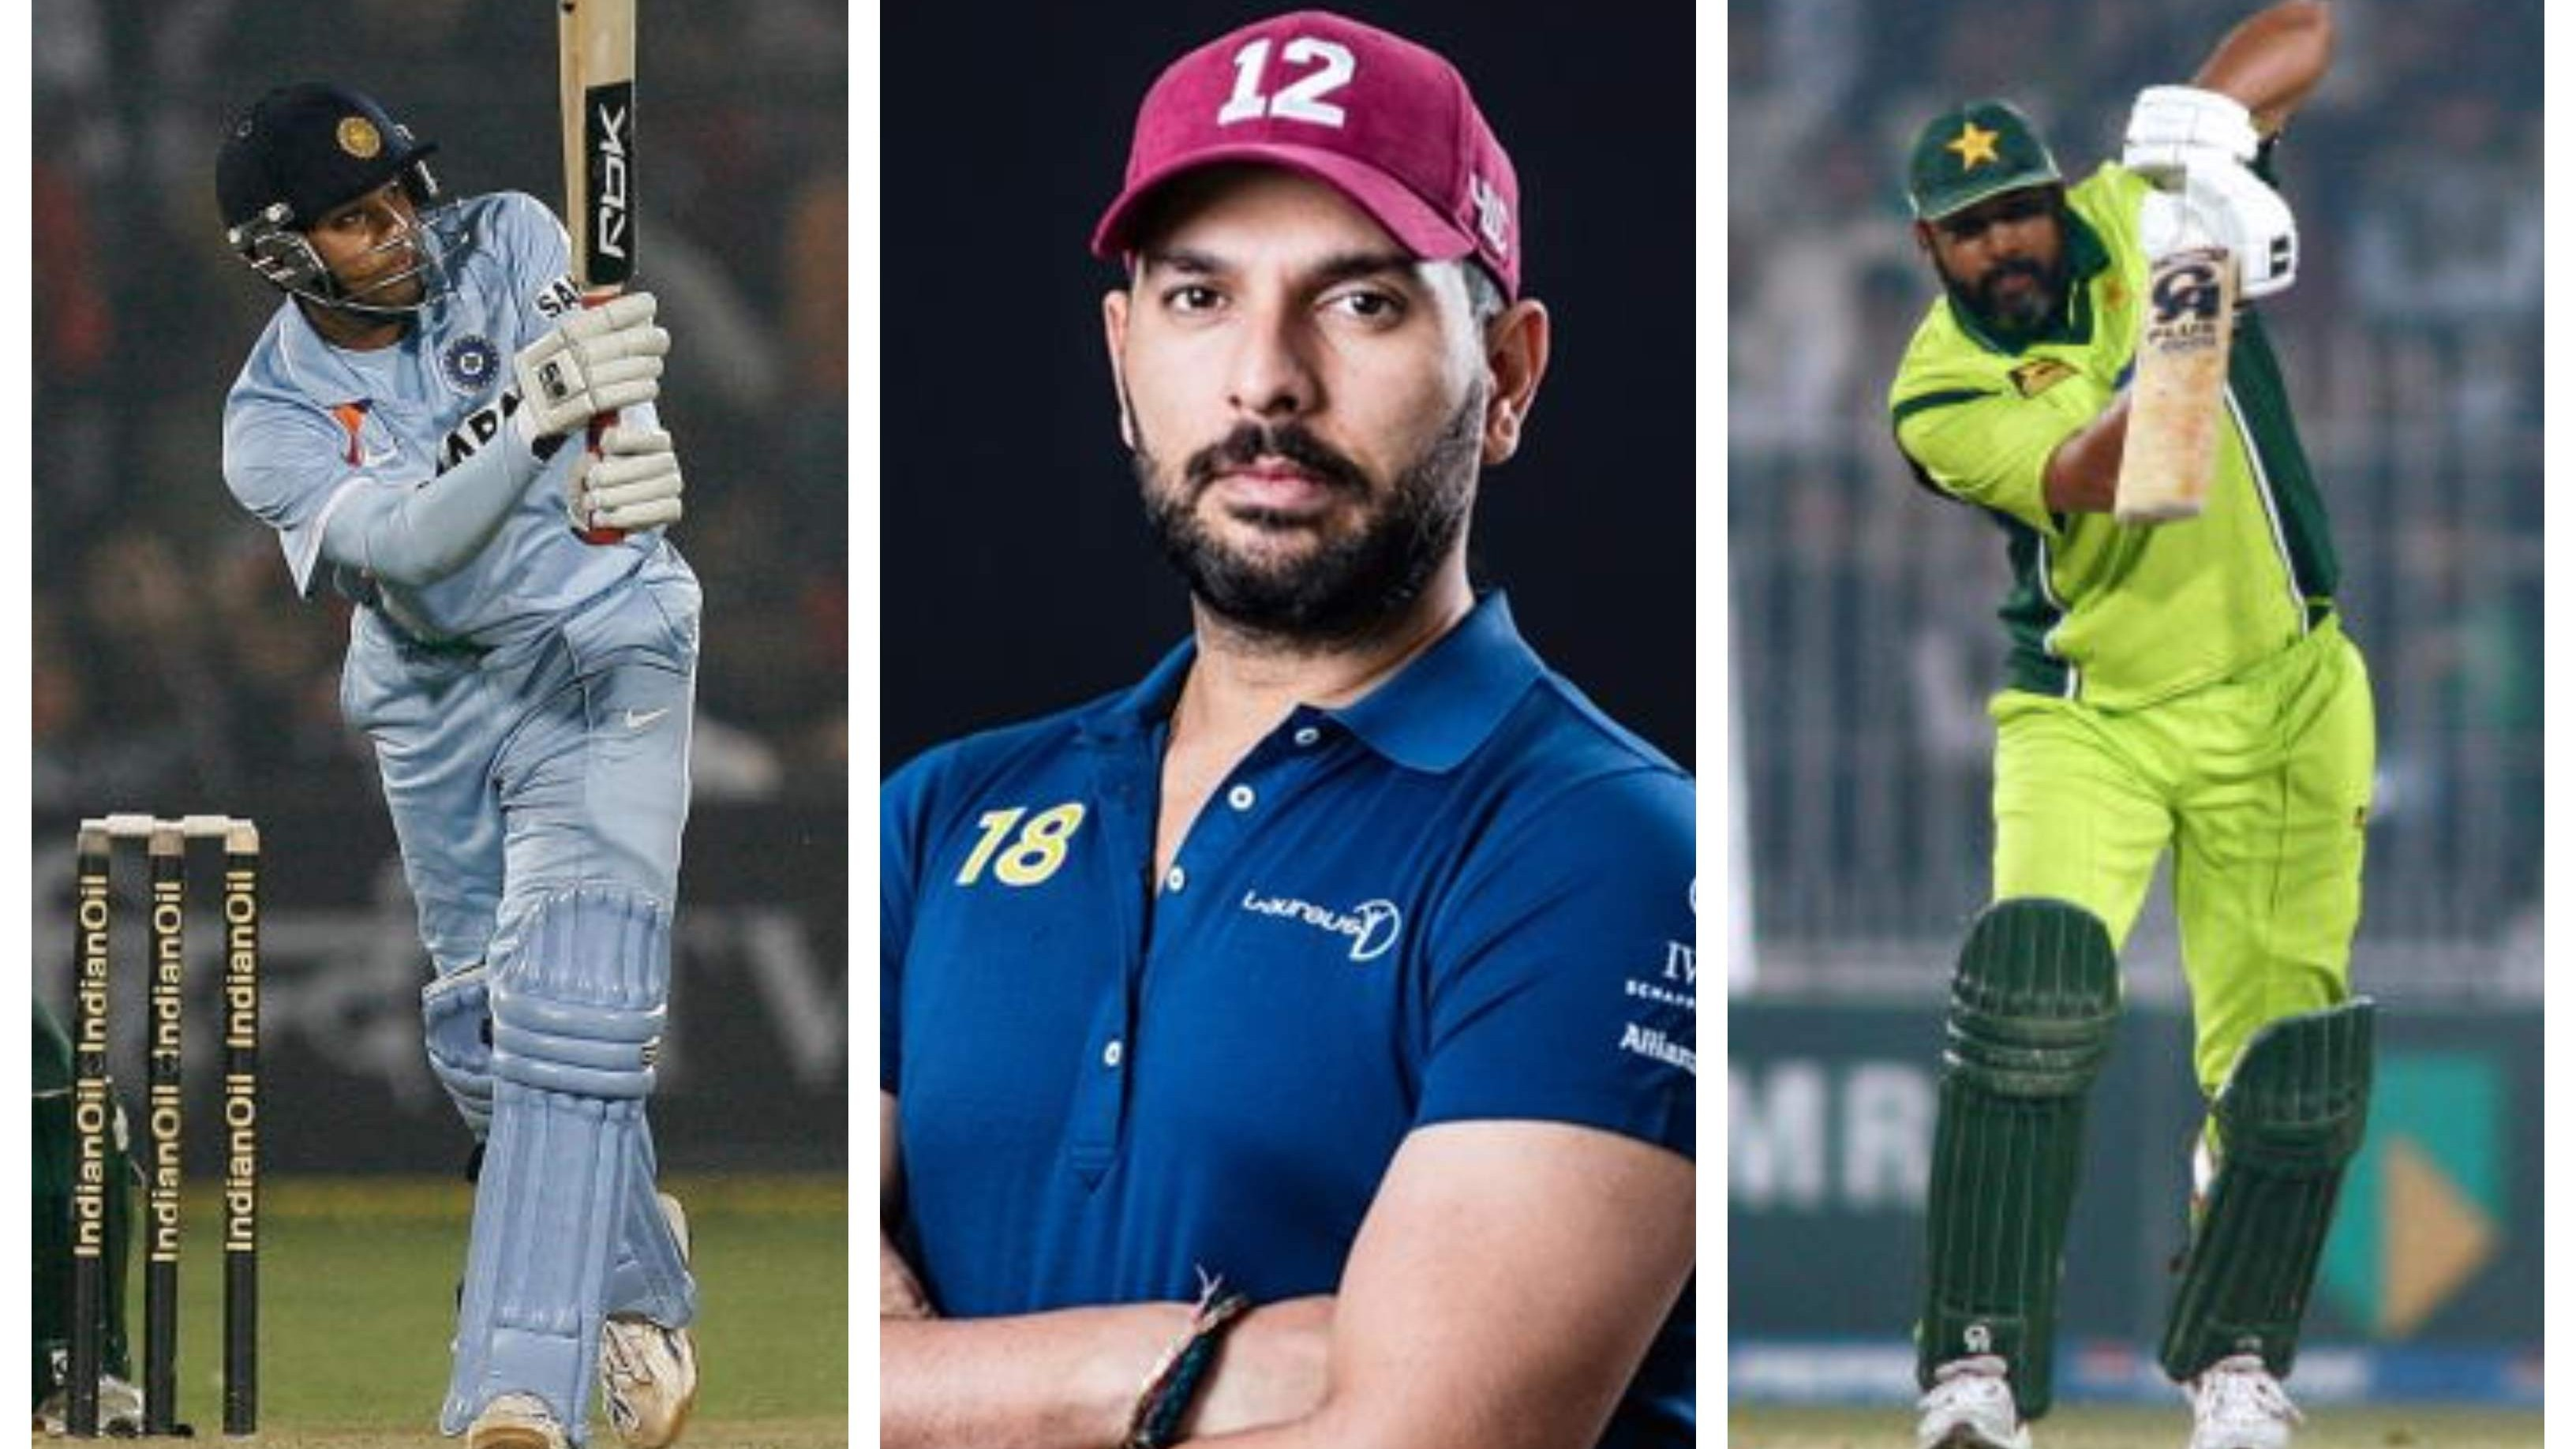 Young Rohit Sharma reminded me of Inzamam-ul-Haq, recalls Yuvraj Singh